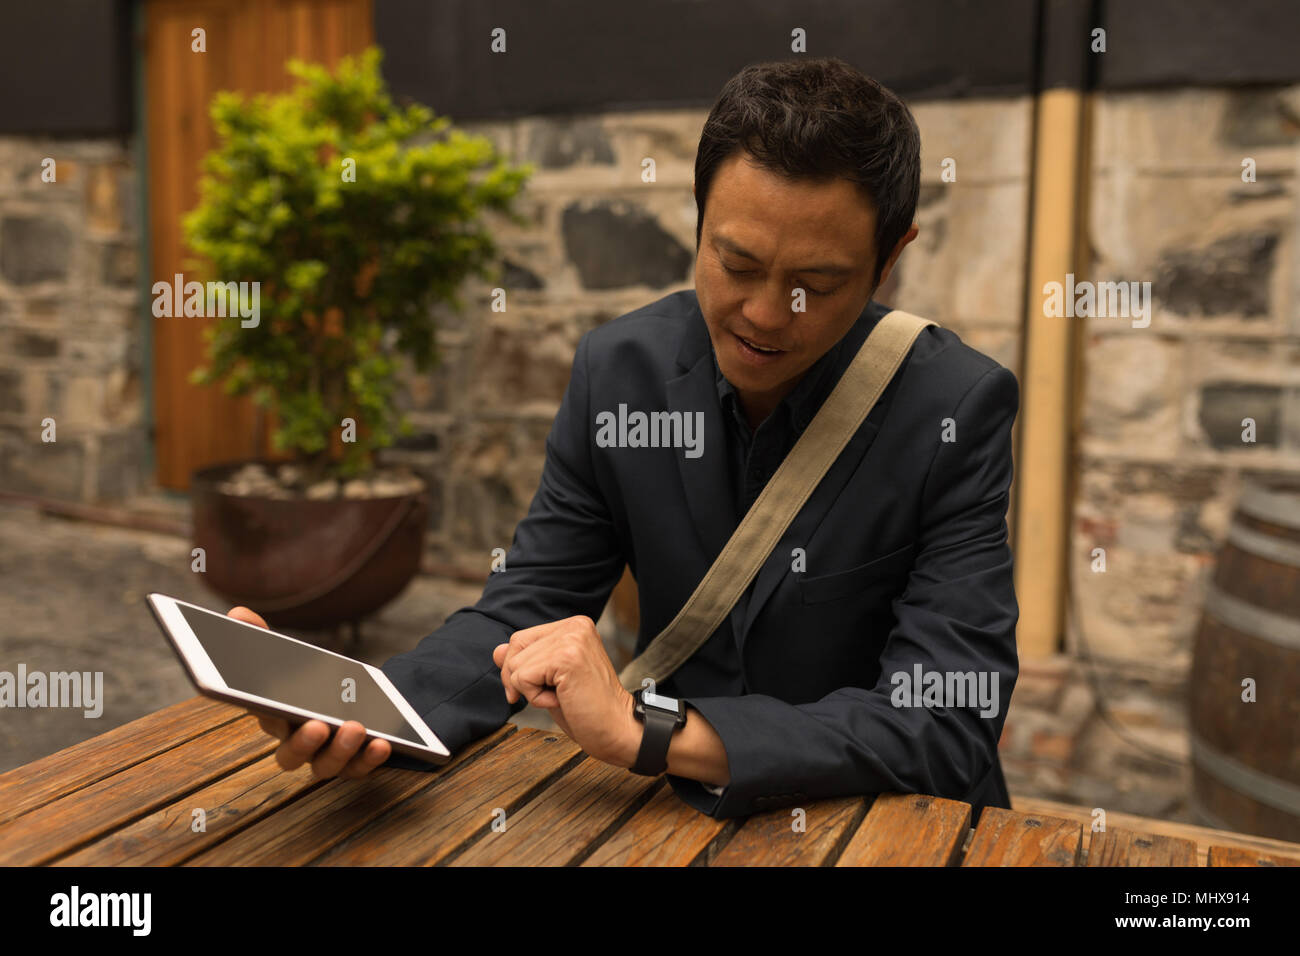 Businessman looking at smartwatch in the pavement cafe - Stock Image